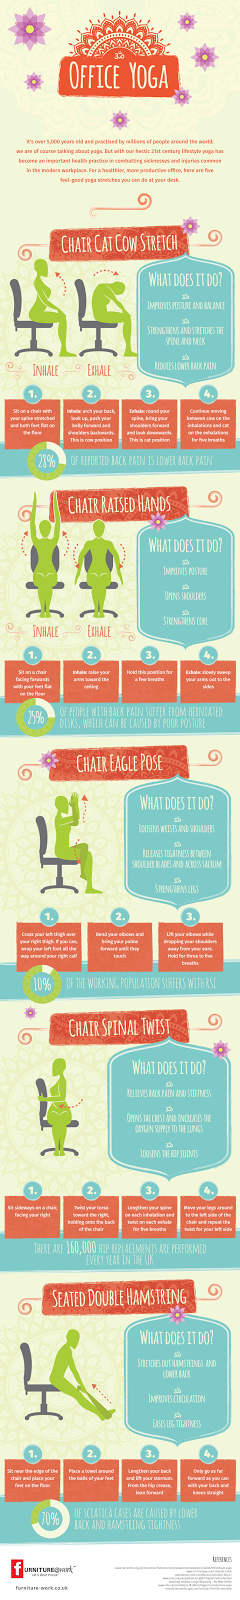 Anyone For Office Yoga? Furniture At Work - infographic